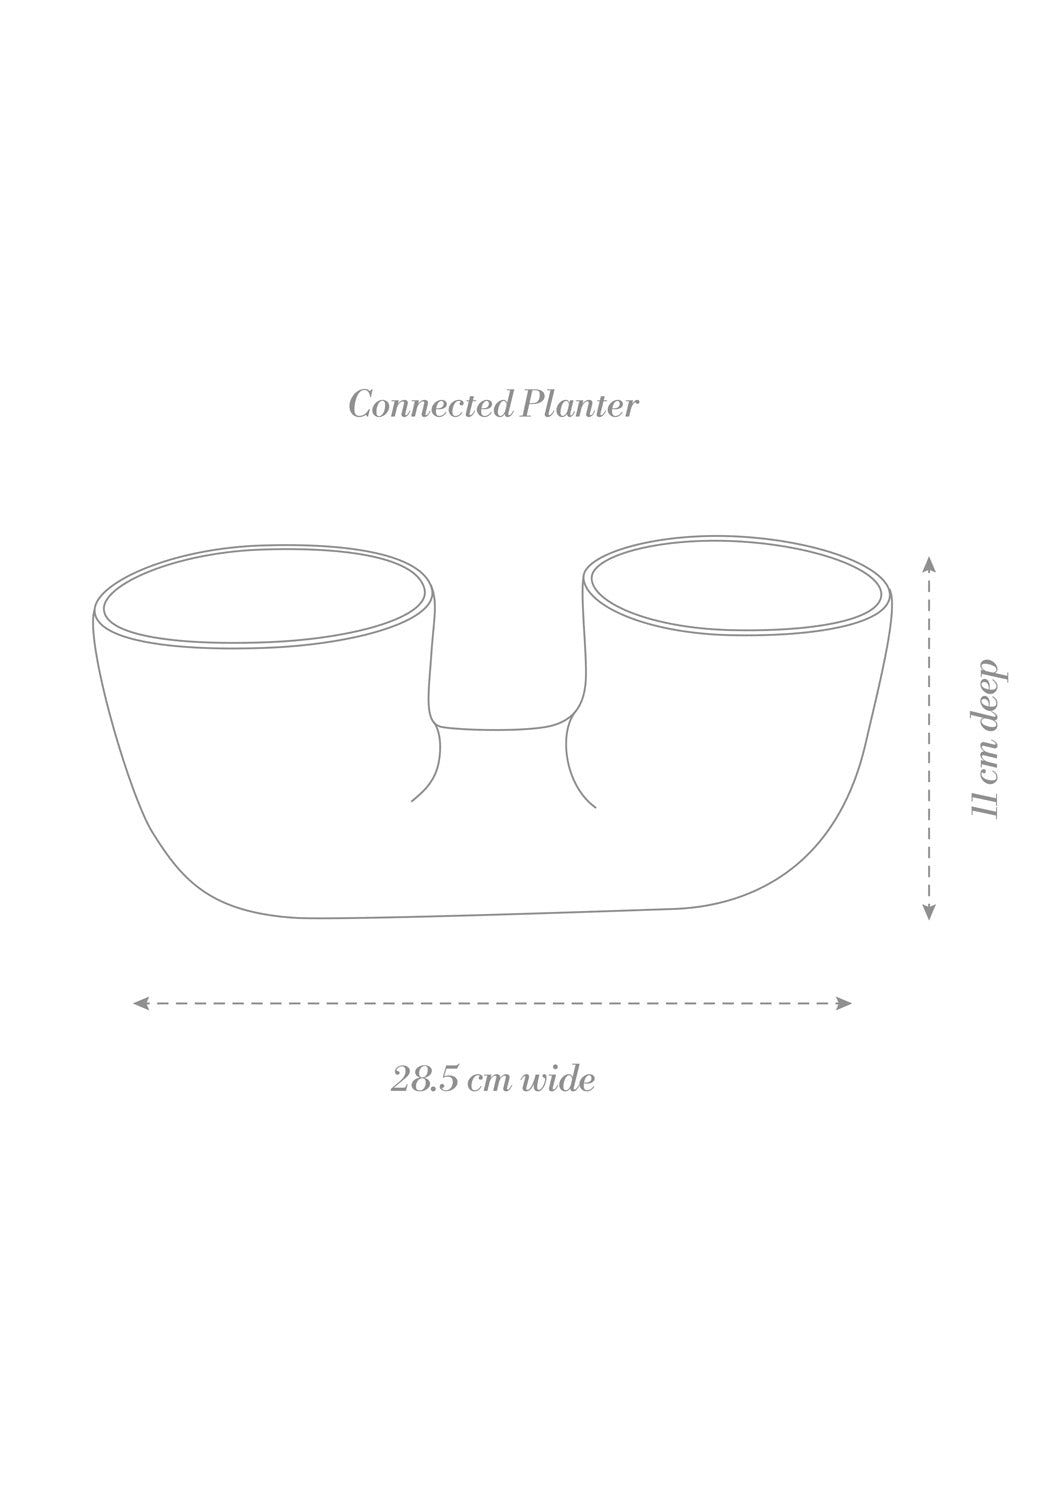 Connected Planter Charcoal